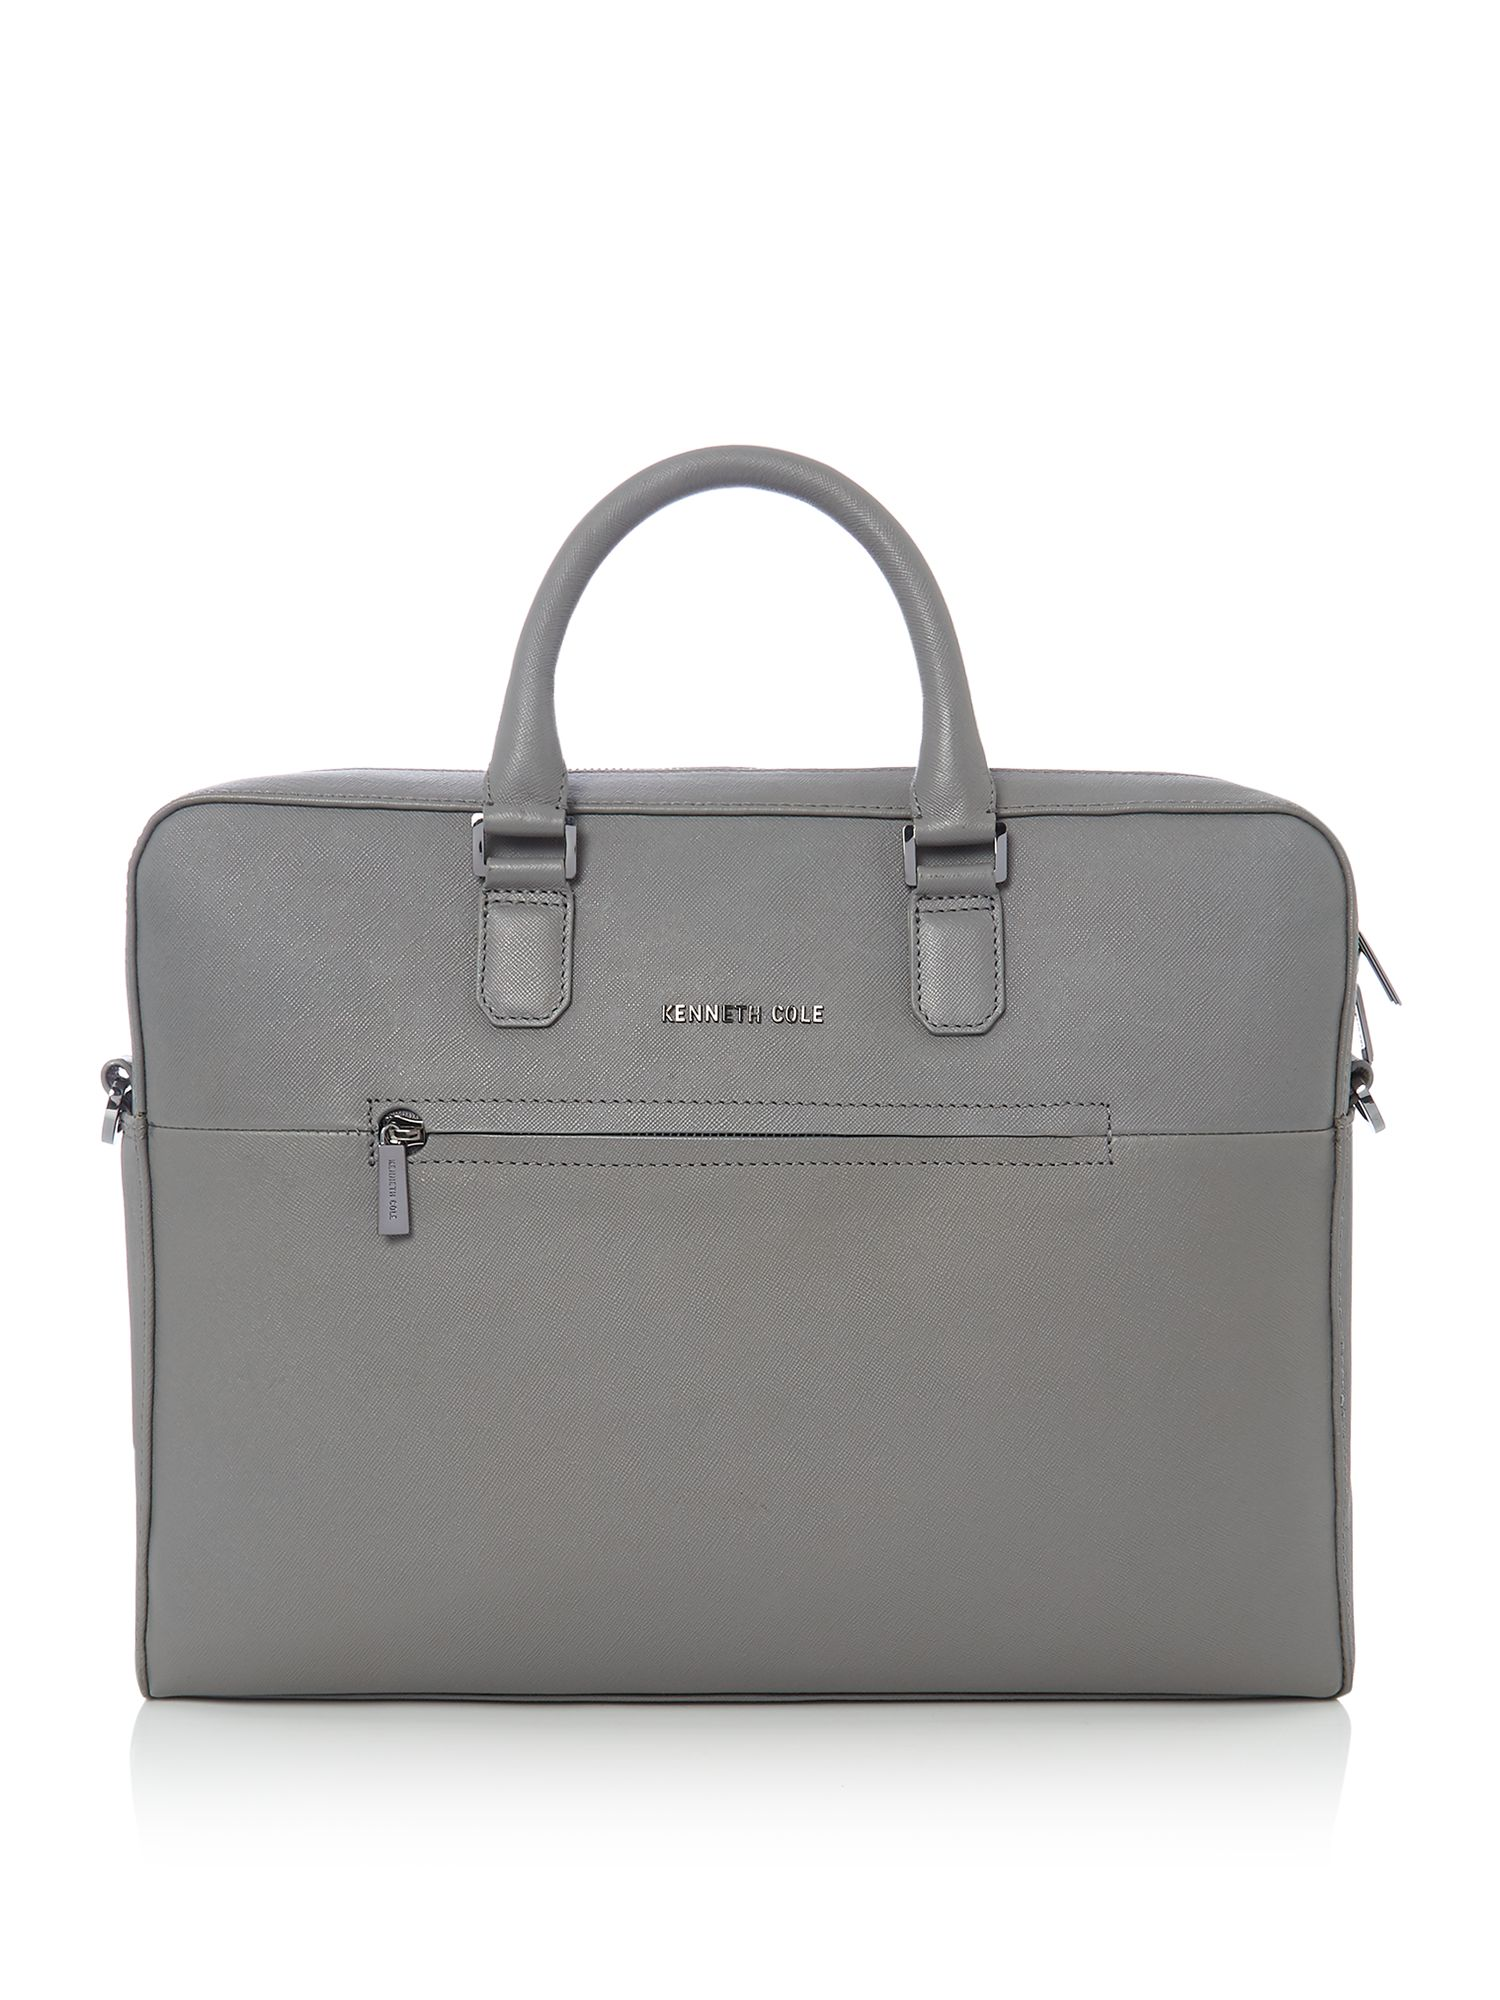 Kenneth Cole Saffiano Leather Laptop Bag, Grey